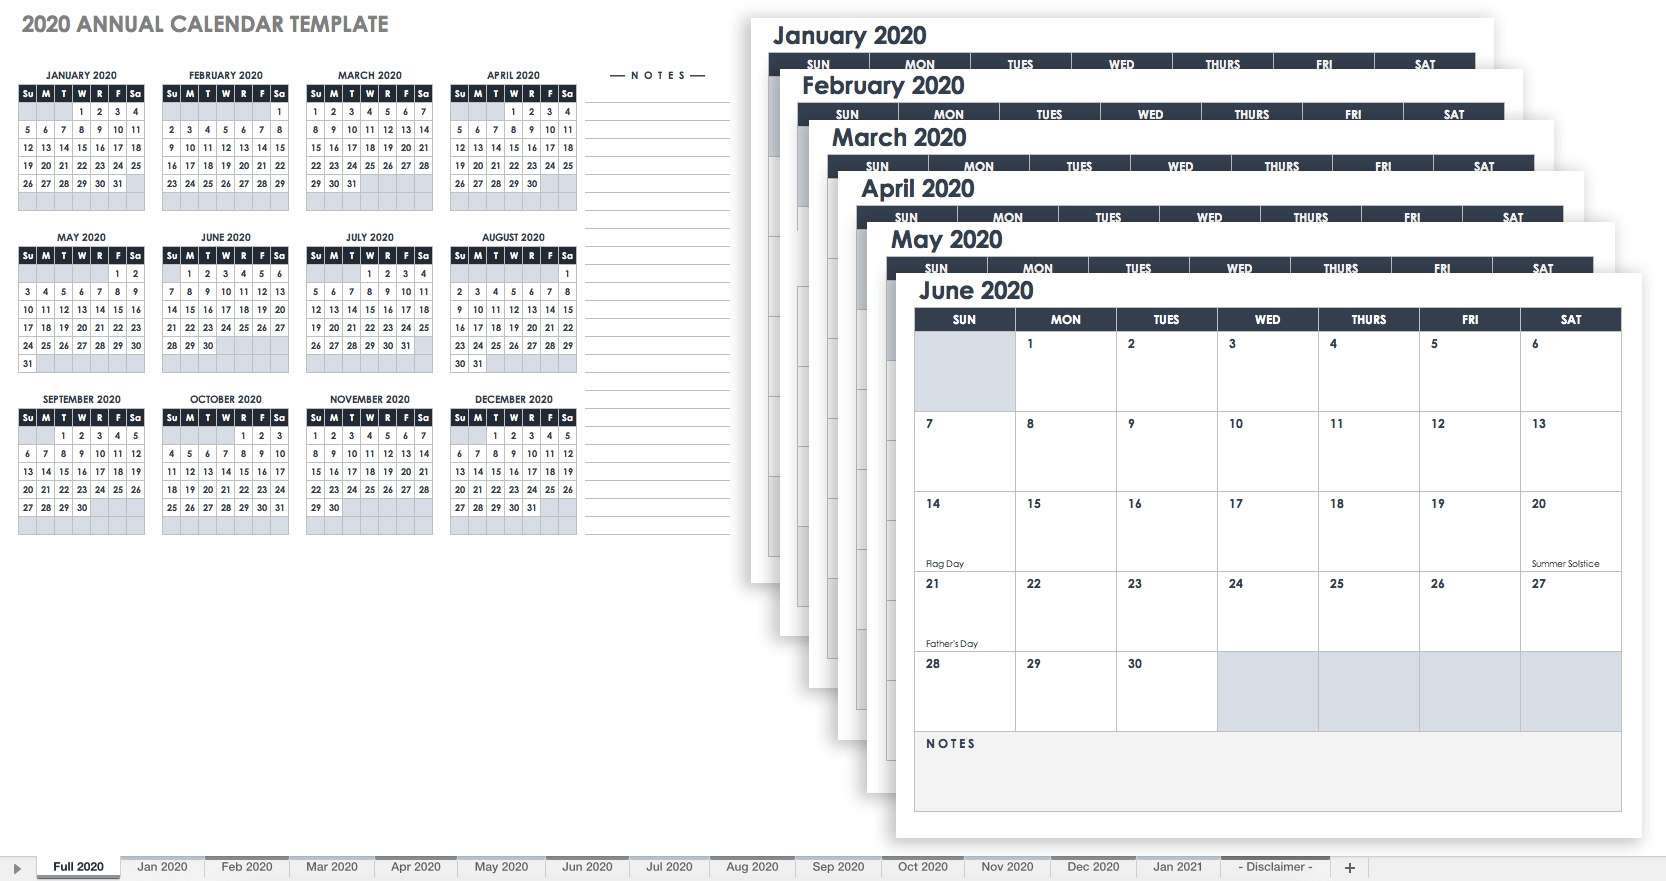 Free, Printable Excel Calendar Templates For 2019 & On | Smartsheet intended for Gant Chart Calendar Year In Weeks For 2020